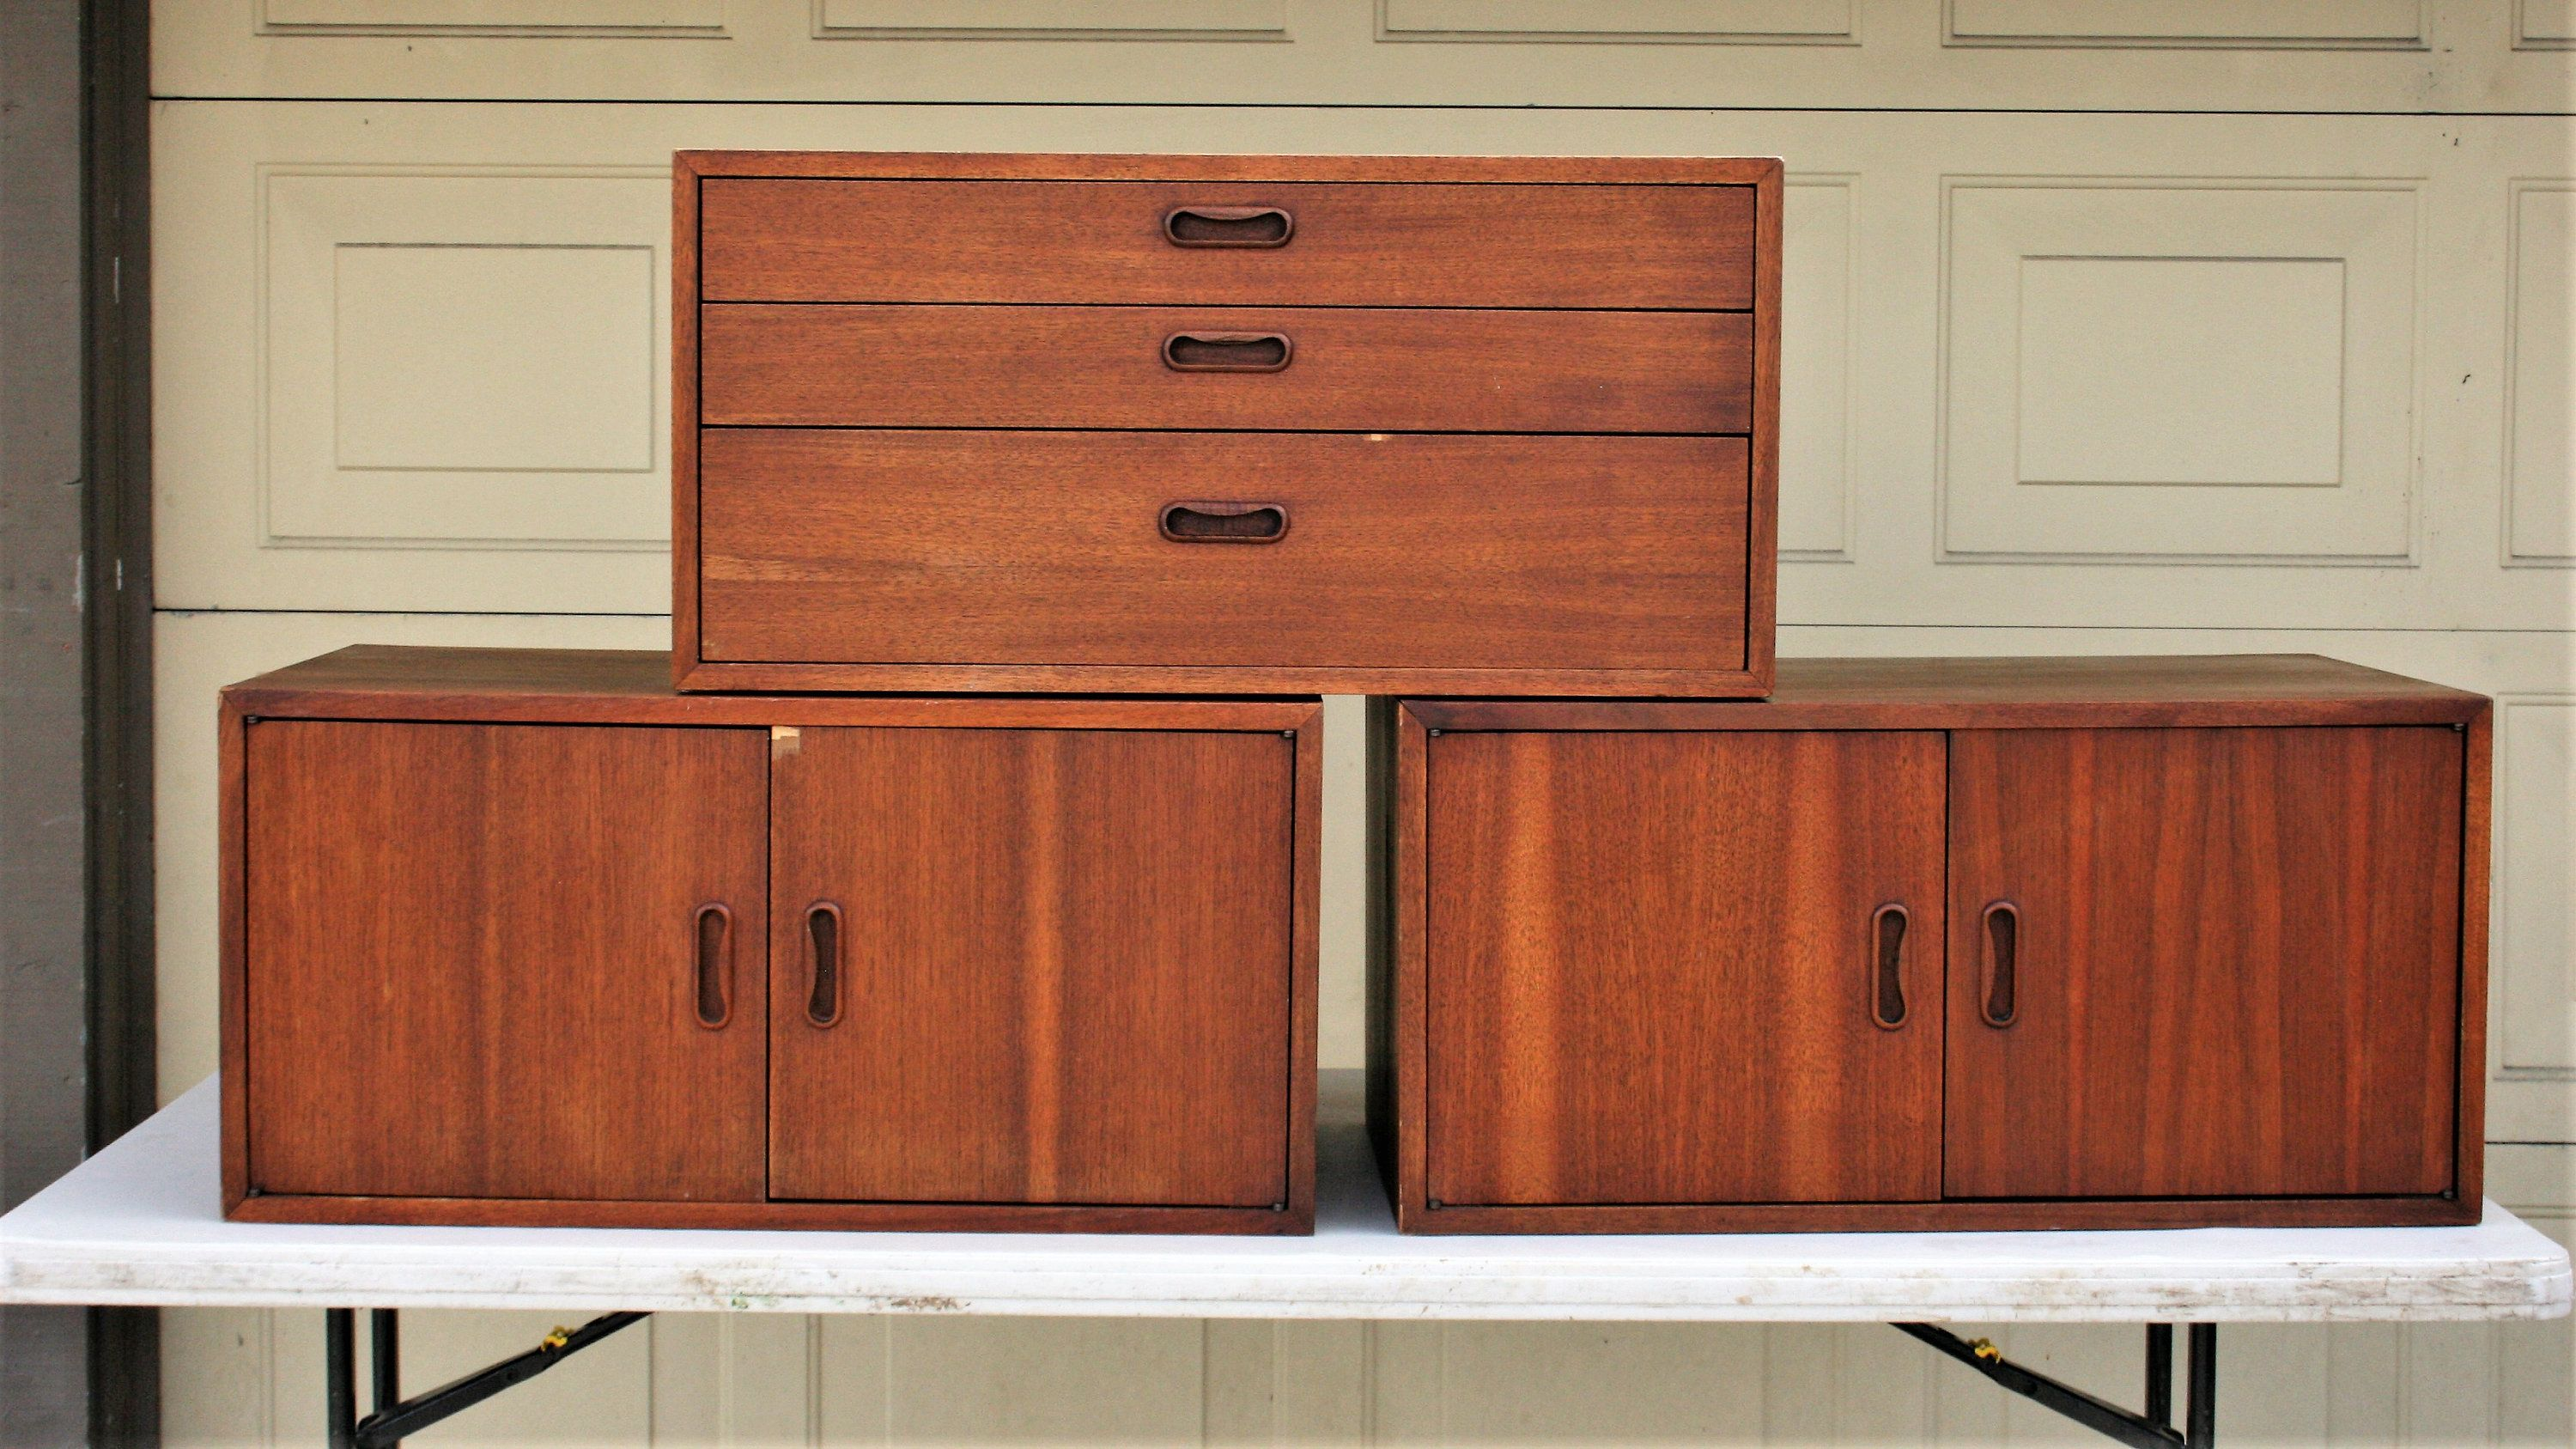 George Nelson Omni Wall Mount Cabinets Mid Century Wall Mount Cabinets Wall Mounted Cabinet Vintage Cabinets Wall Mount